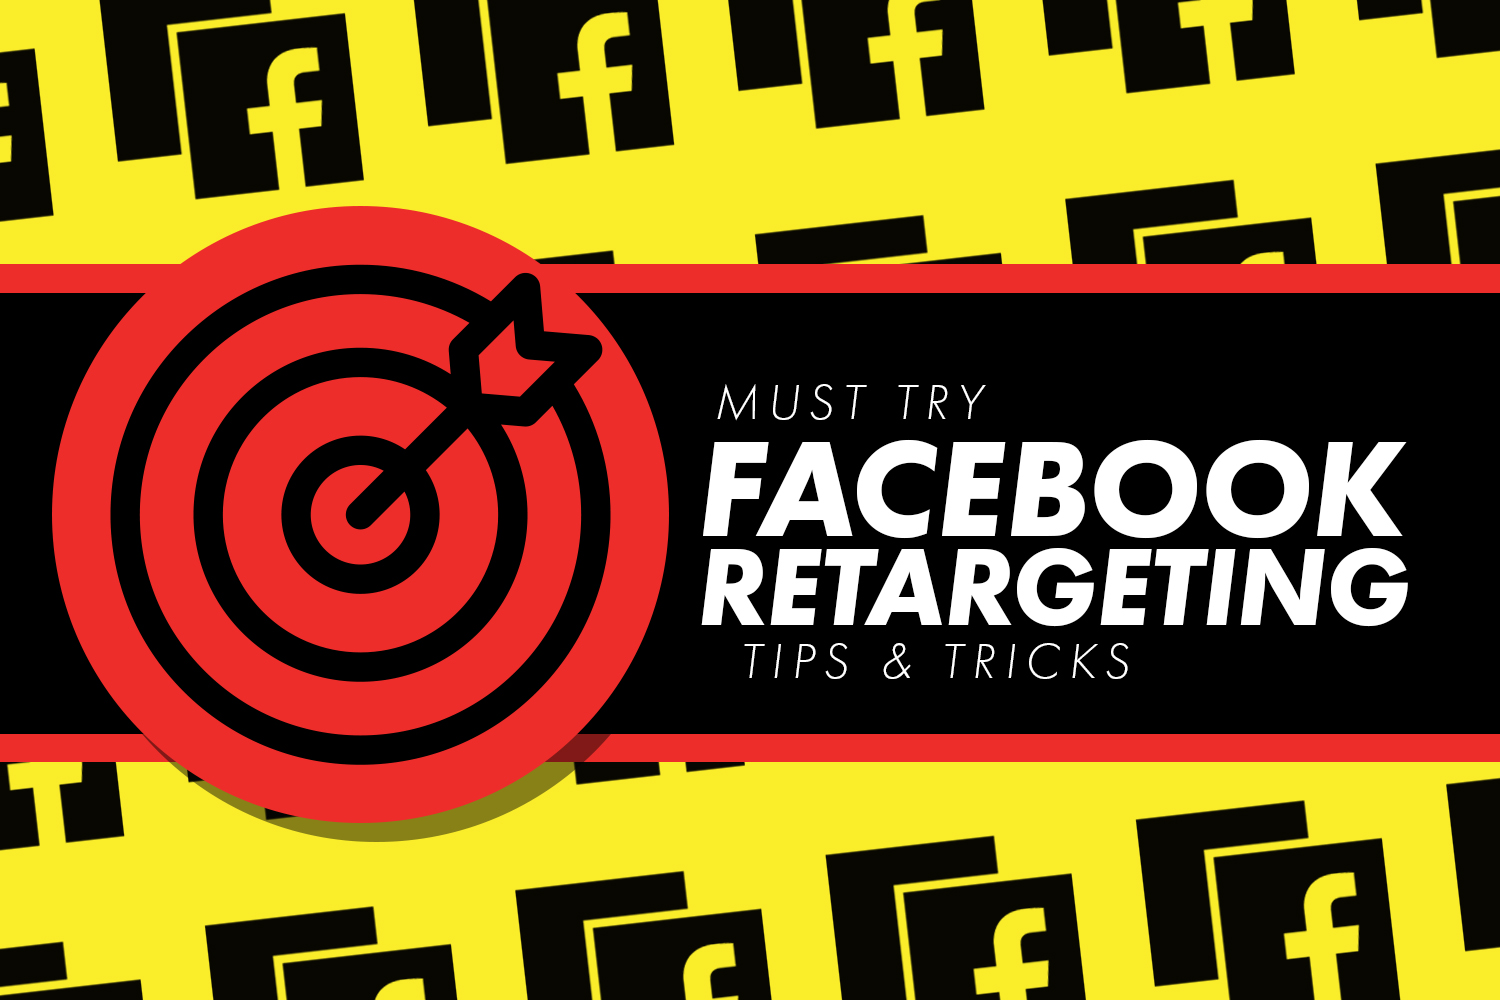 Must Try Facebook Retargeting Tips and Tricks